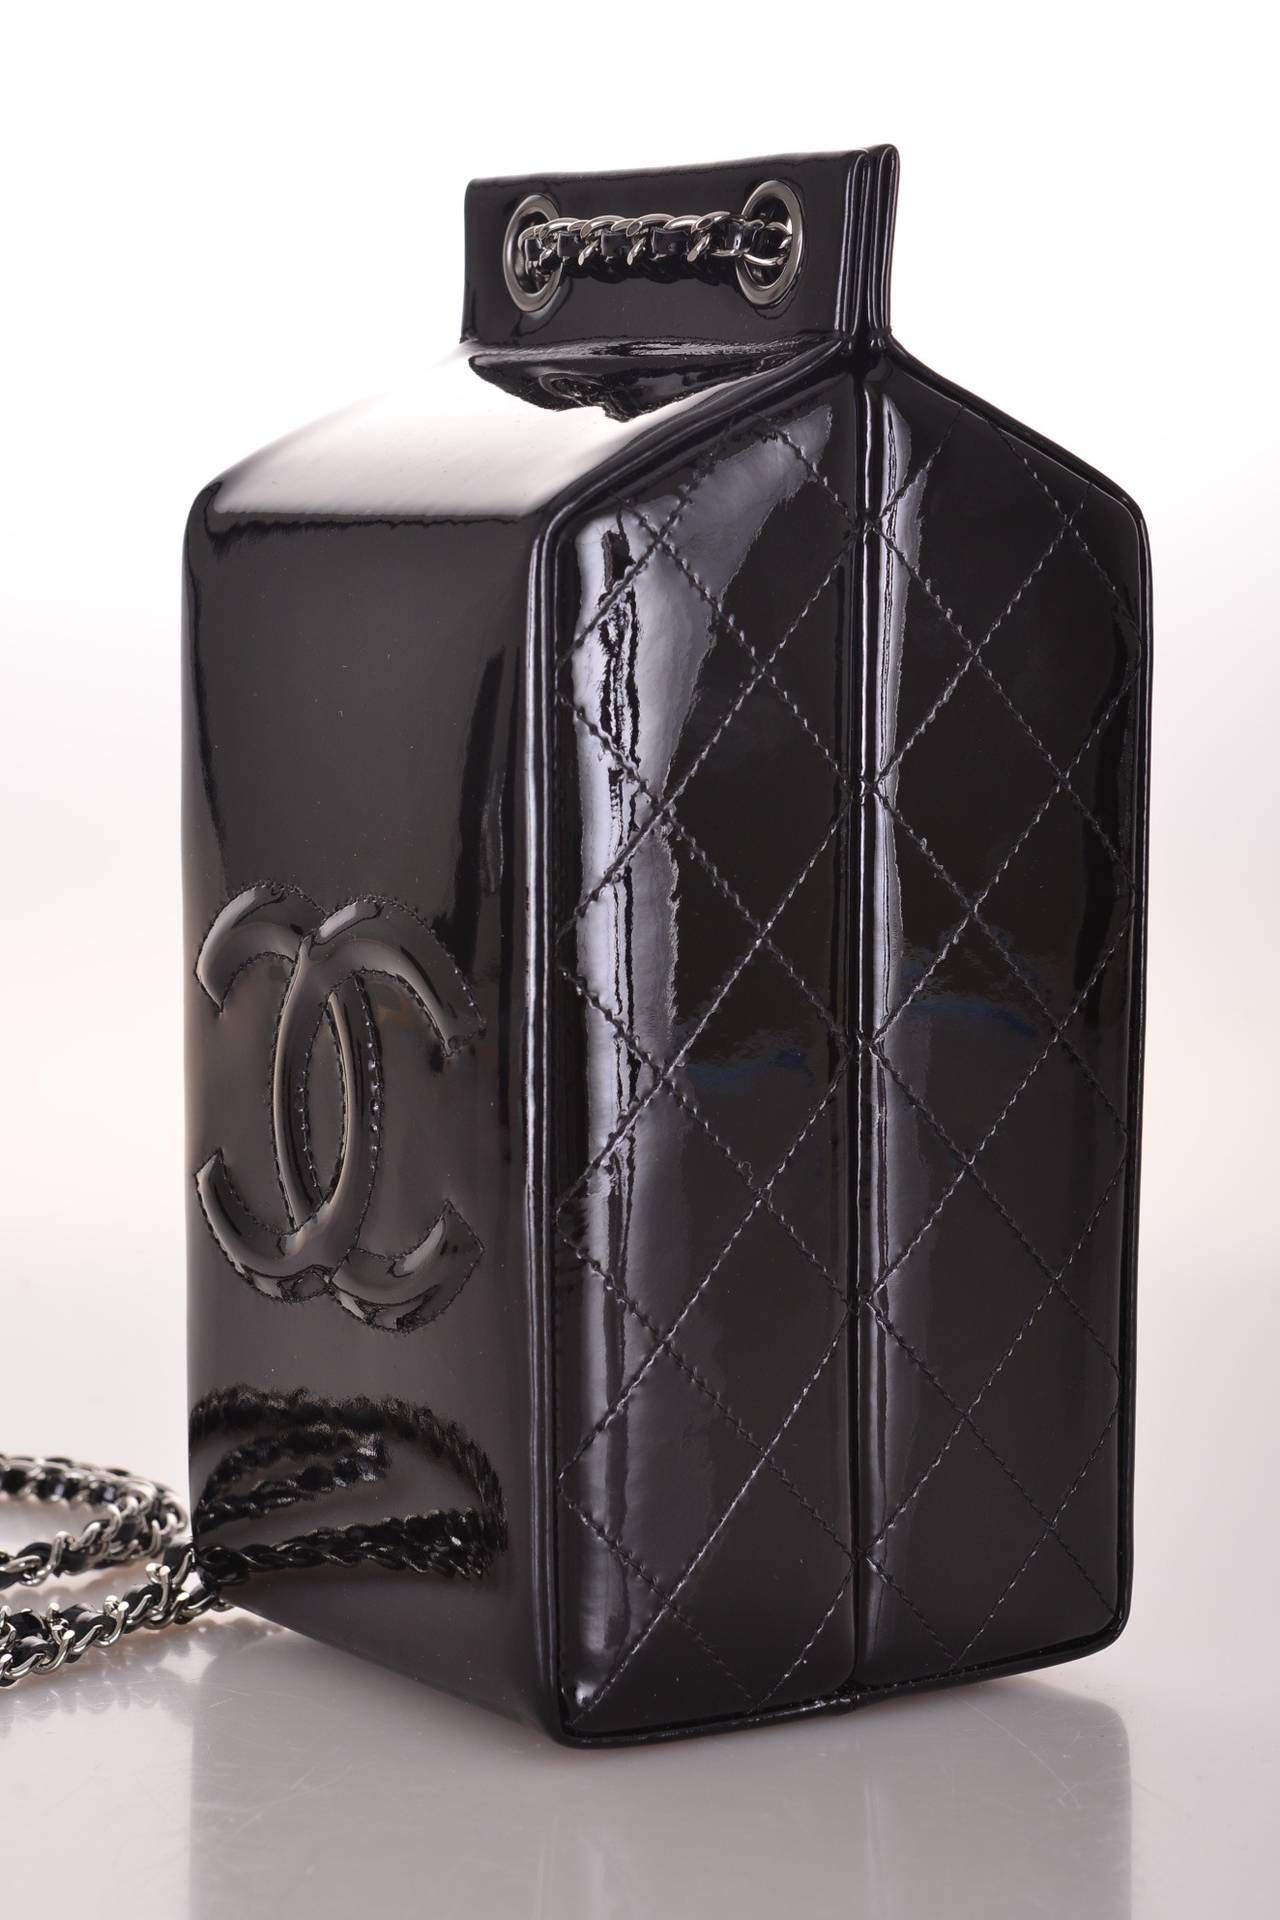 09e8e00afd LIMITED EDITION RUNWAY Chanel MILK BOTTLE BLACK PATENT LEATHER CLASSIC